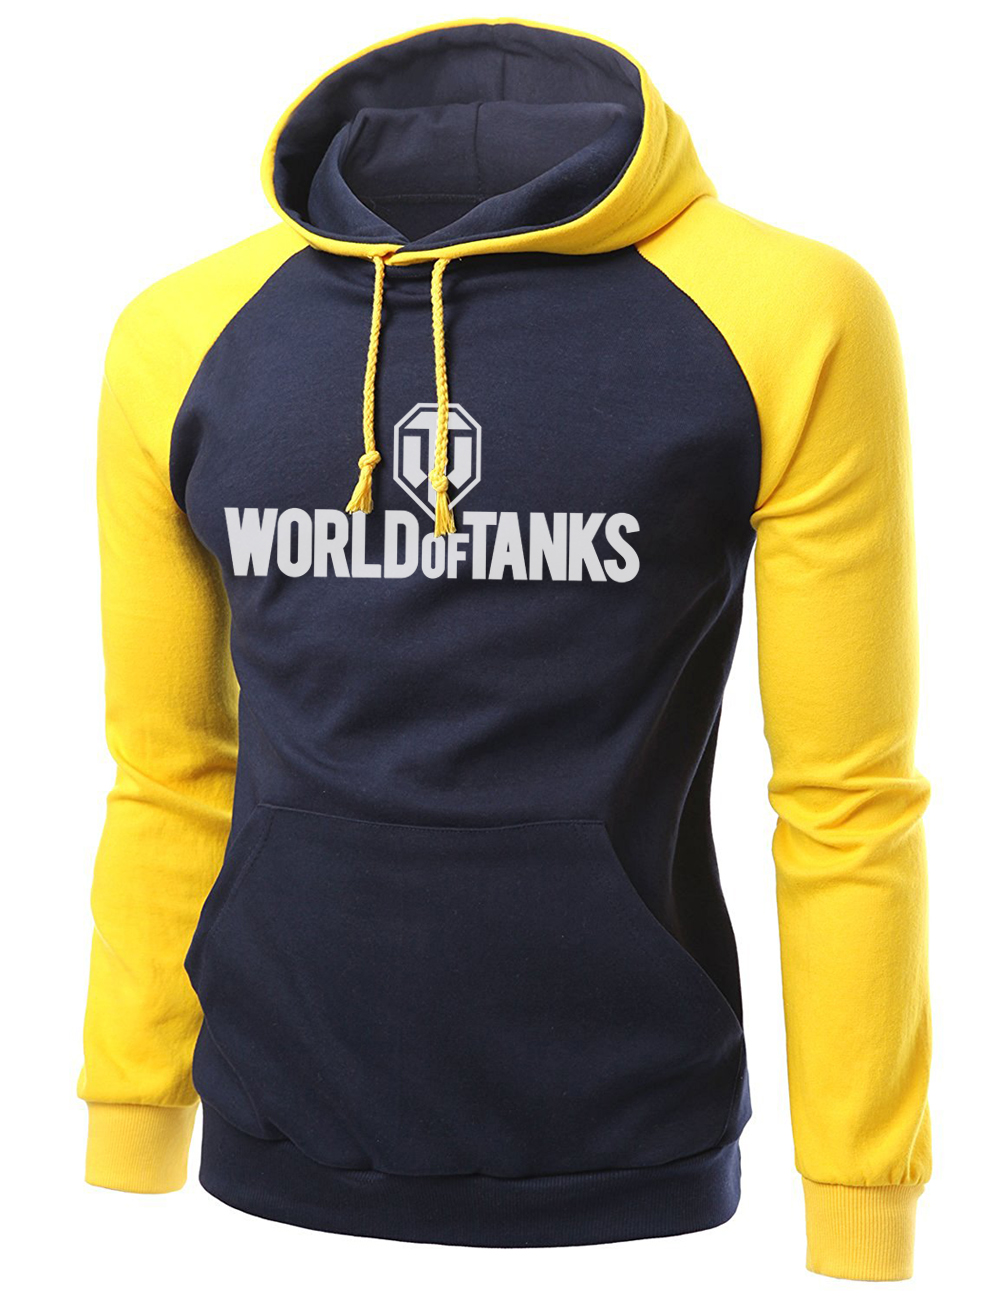 2019 New Arrival World War 2 Tanks Printed Autumn Winter Fleece Warm Sweatshirts Fashion Raglan Hoodies Slim Fit Tracksuit S-XXL